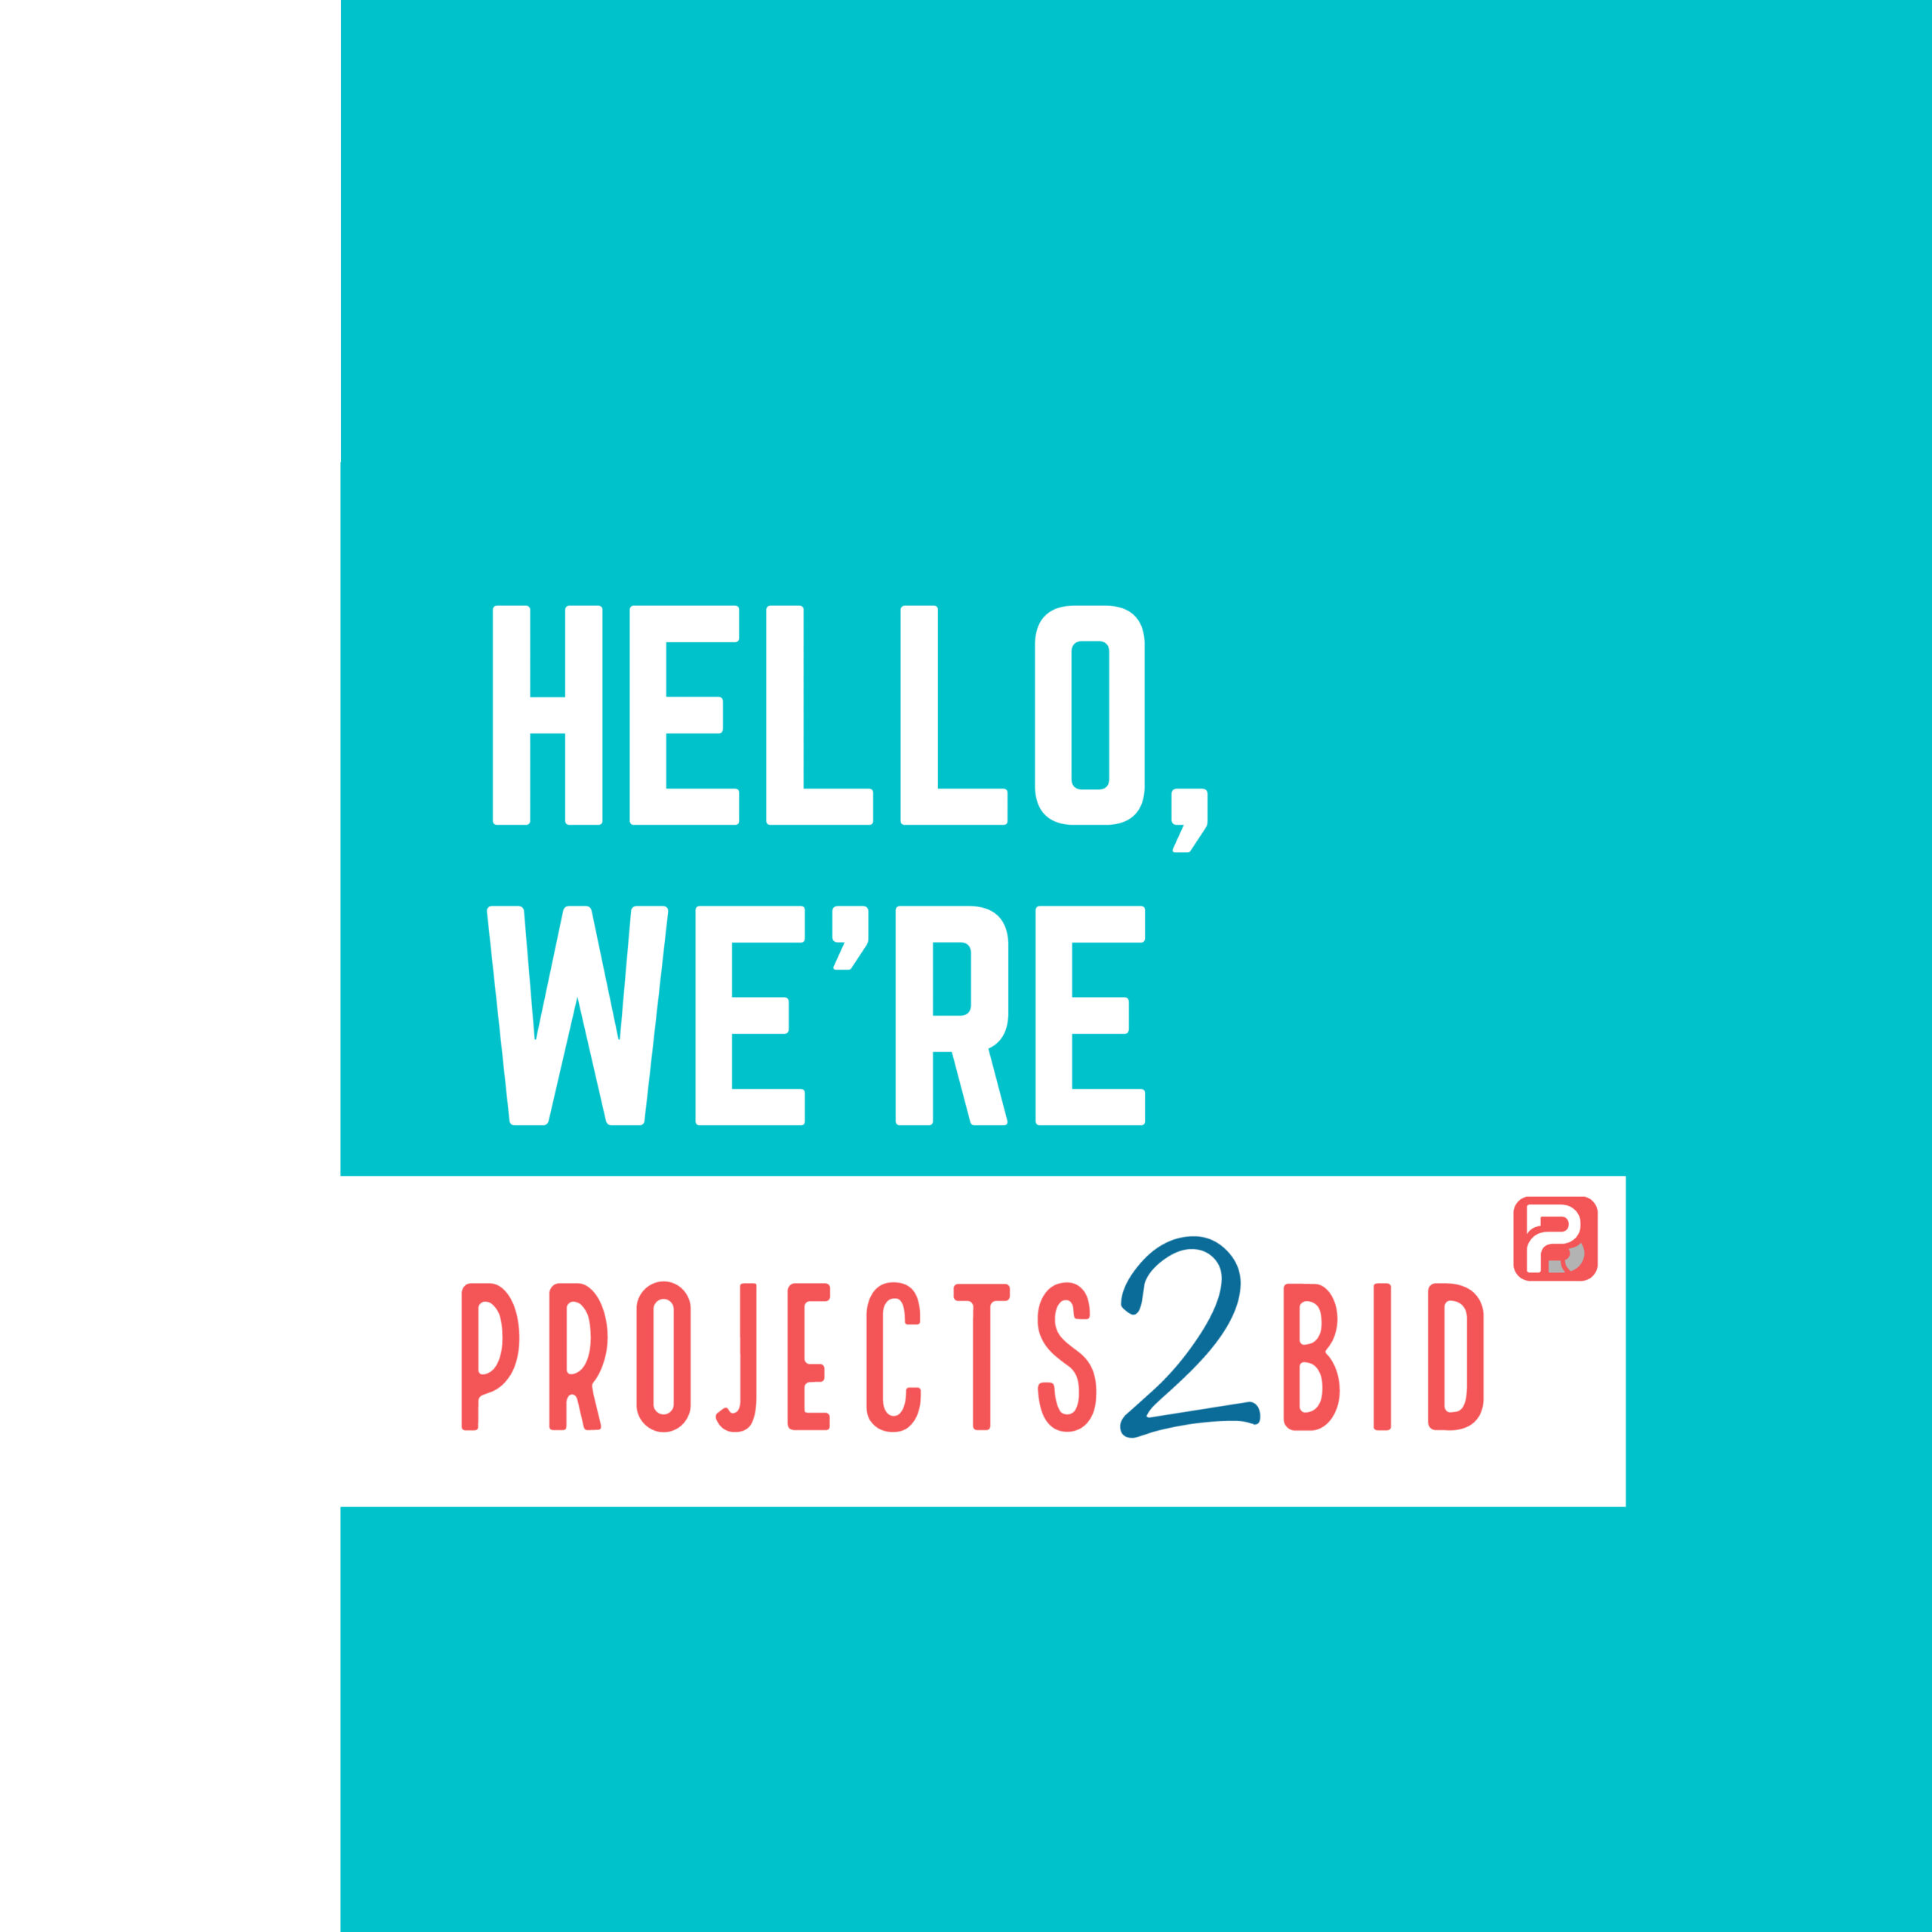 We are projects2bid